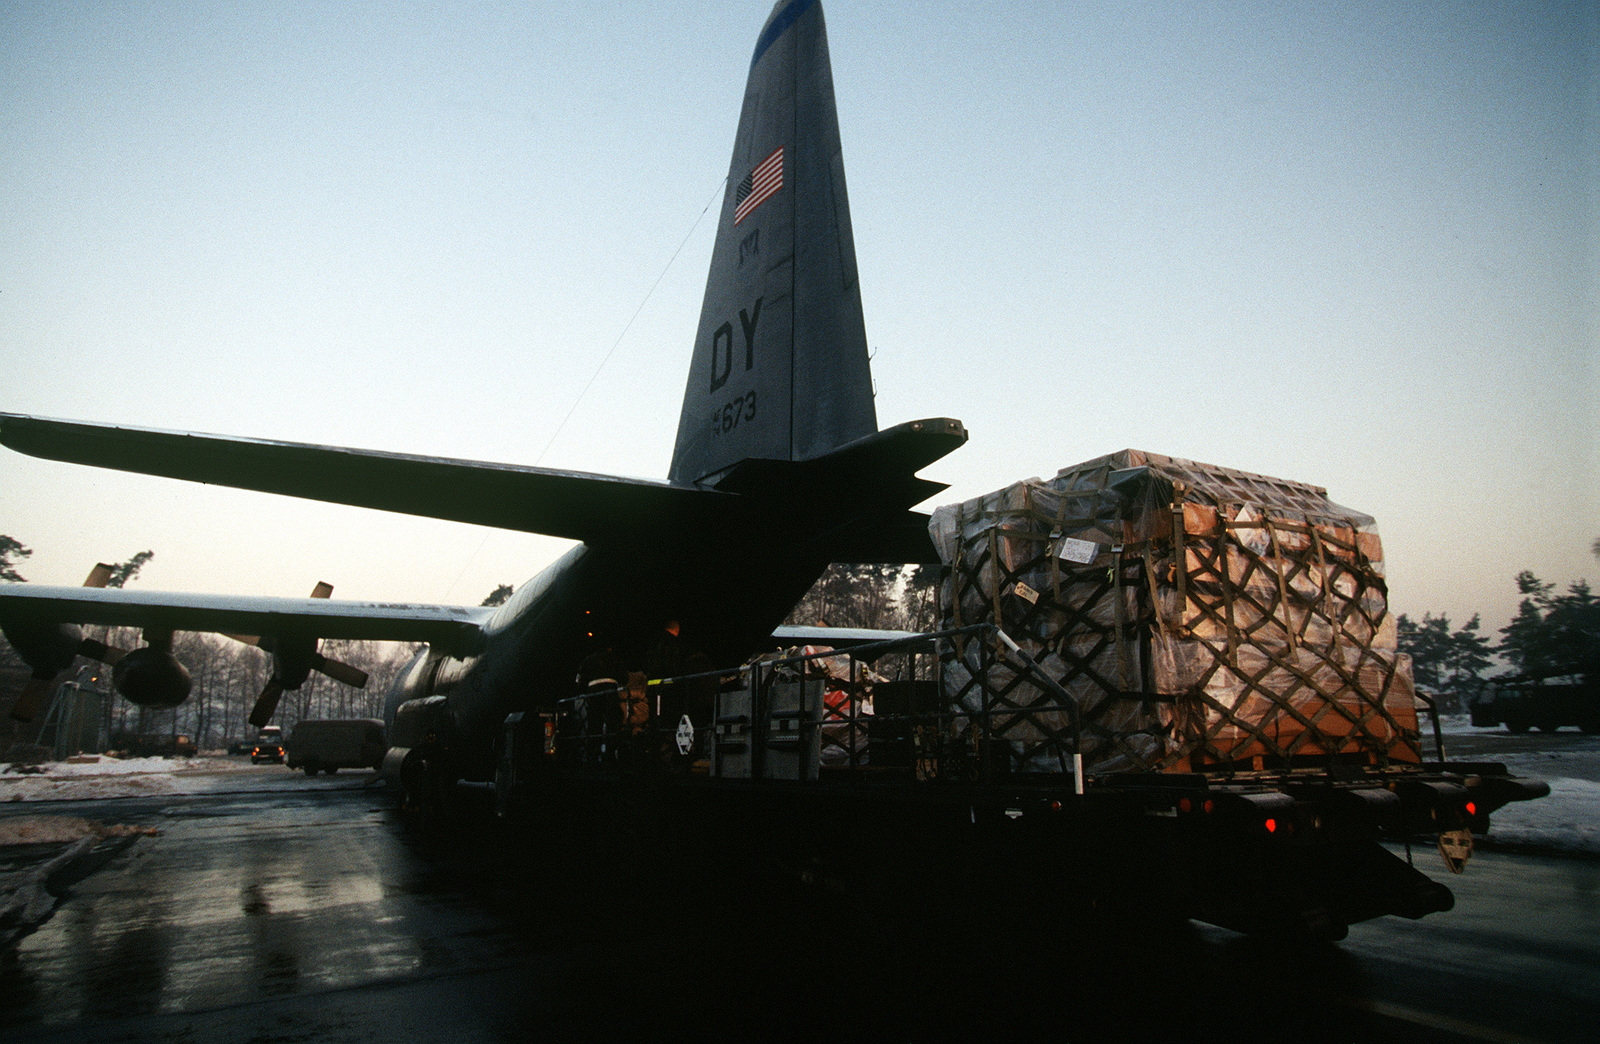 A 40th Airlift Squadron (AS), C-130H is uploaded with cargo by personnel using K-Loaders prior to a mission into Tuzla Air Base, Bosnia at this United States Air Force Europe (USAFE) base. The 40th AS is assigned to the 7th Wing, Dyess Air Force Base, Texas and is deployed to Ramstein for a 45 day Temporary Duty (TDY) tour to support Operation Joint Endeavor